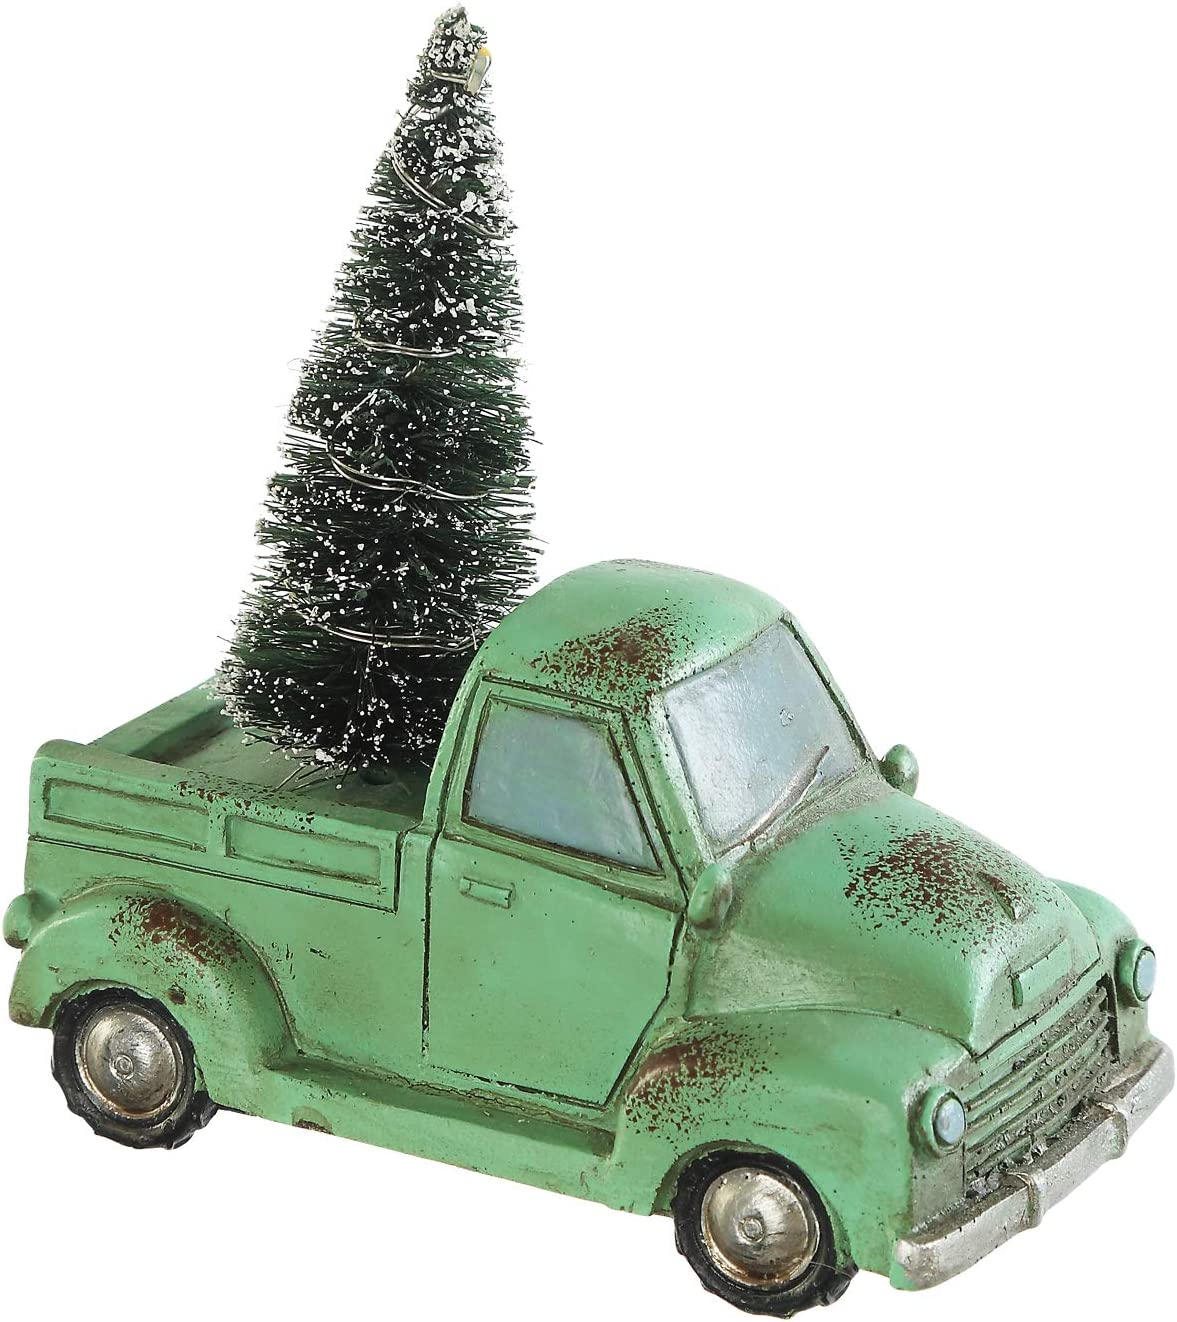 "Holiday Truck with LED Light Up Tree Table Decor Miniature Home Ornaments Figurine, Green, 4.25"" W x 2.25"" D x 4"" H"